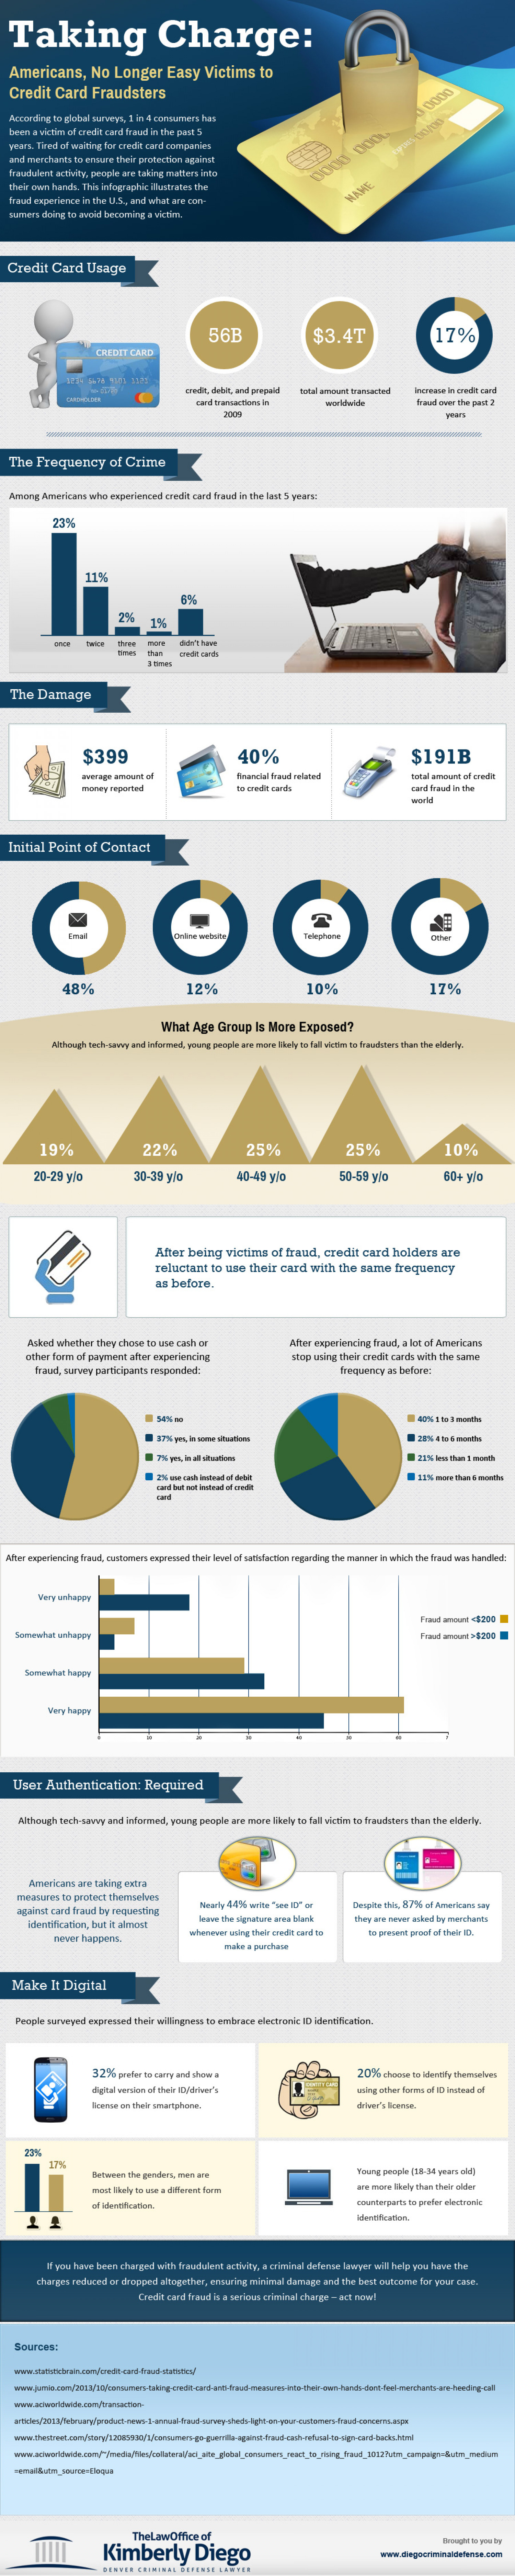 Taking Charge : Americans, No Longer Easy Victims to Credit Card Fraudsters   Infographic